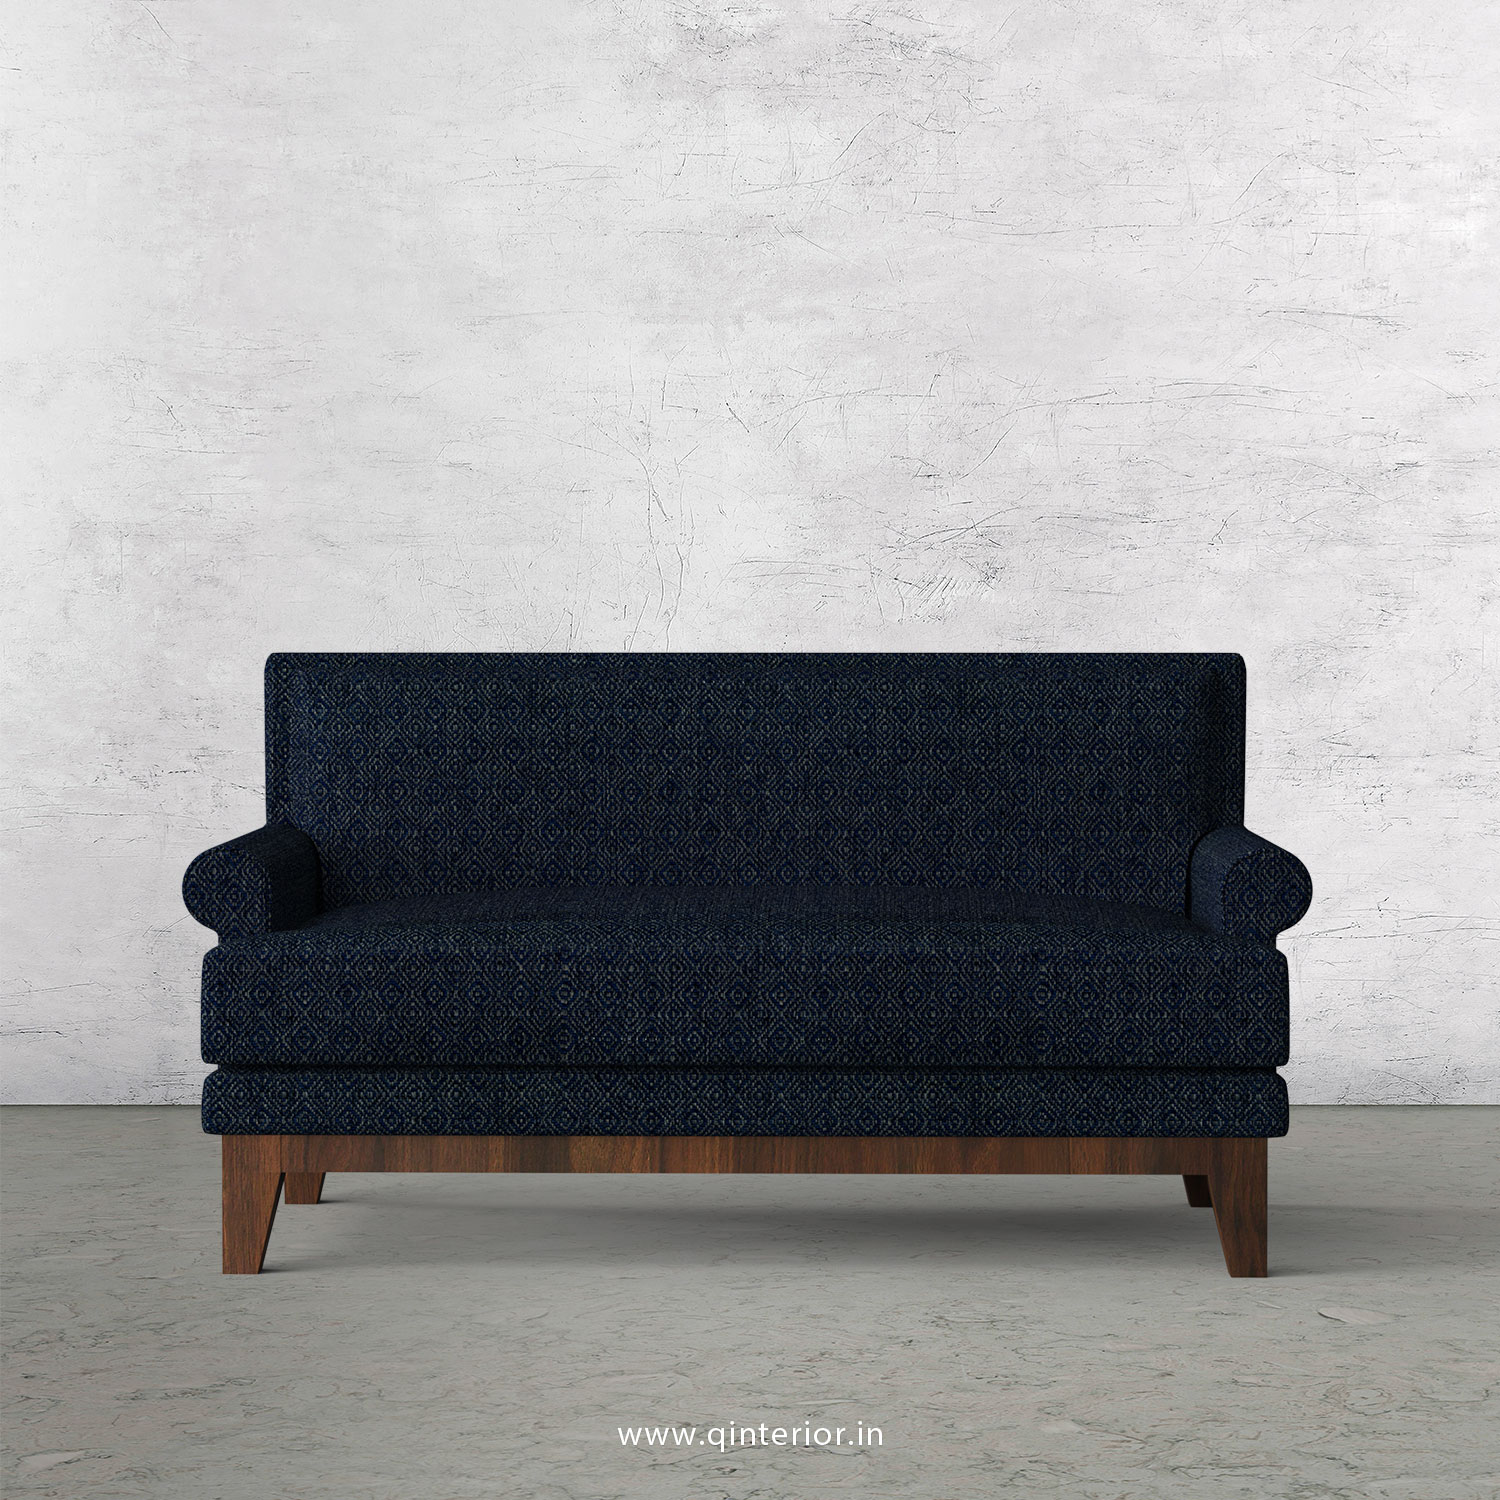 Aviana 2 Seater Sofa in Jacquard - SFA001 JQ20